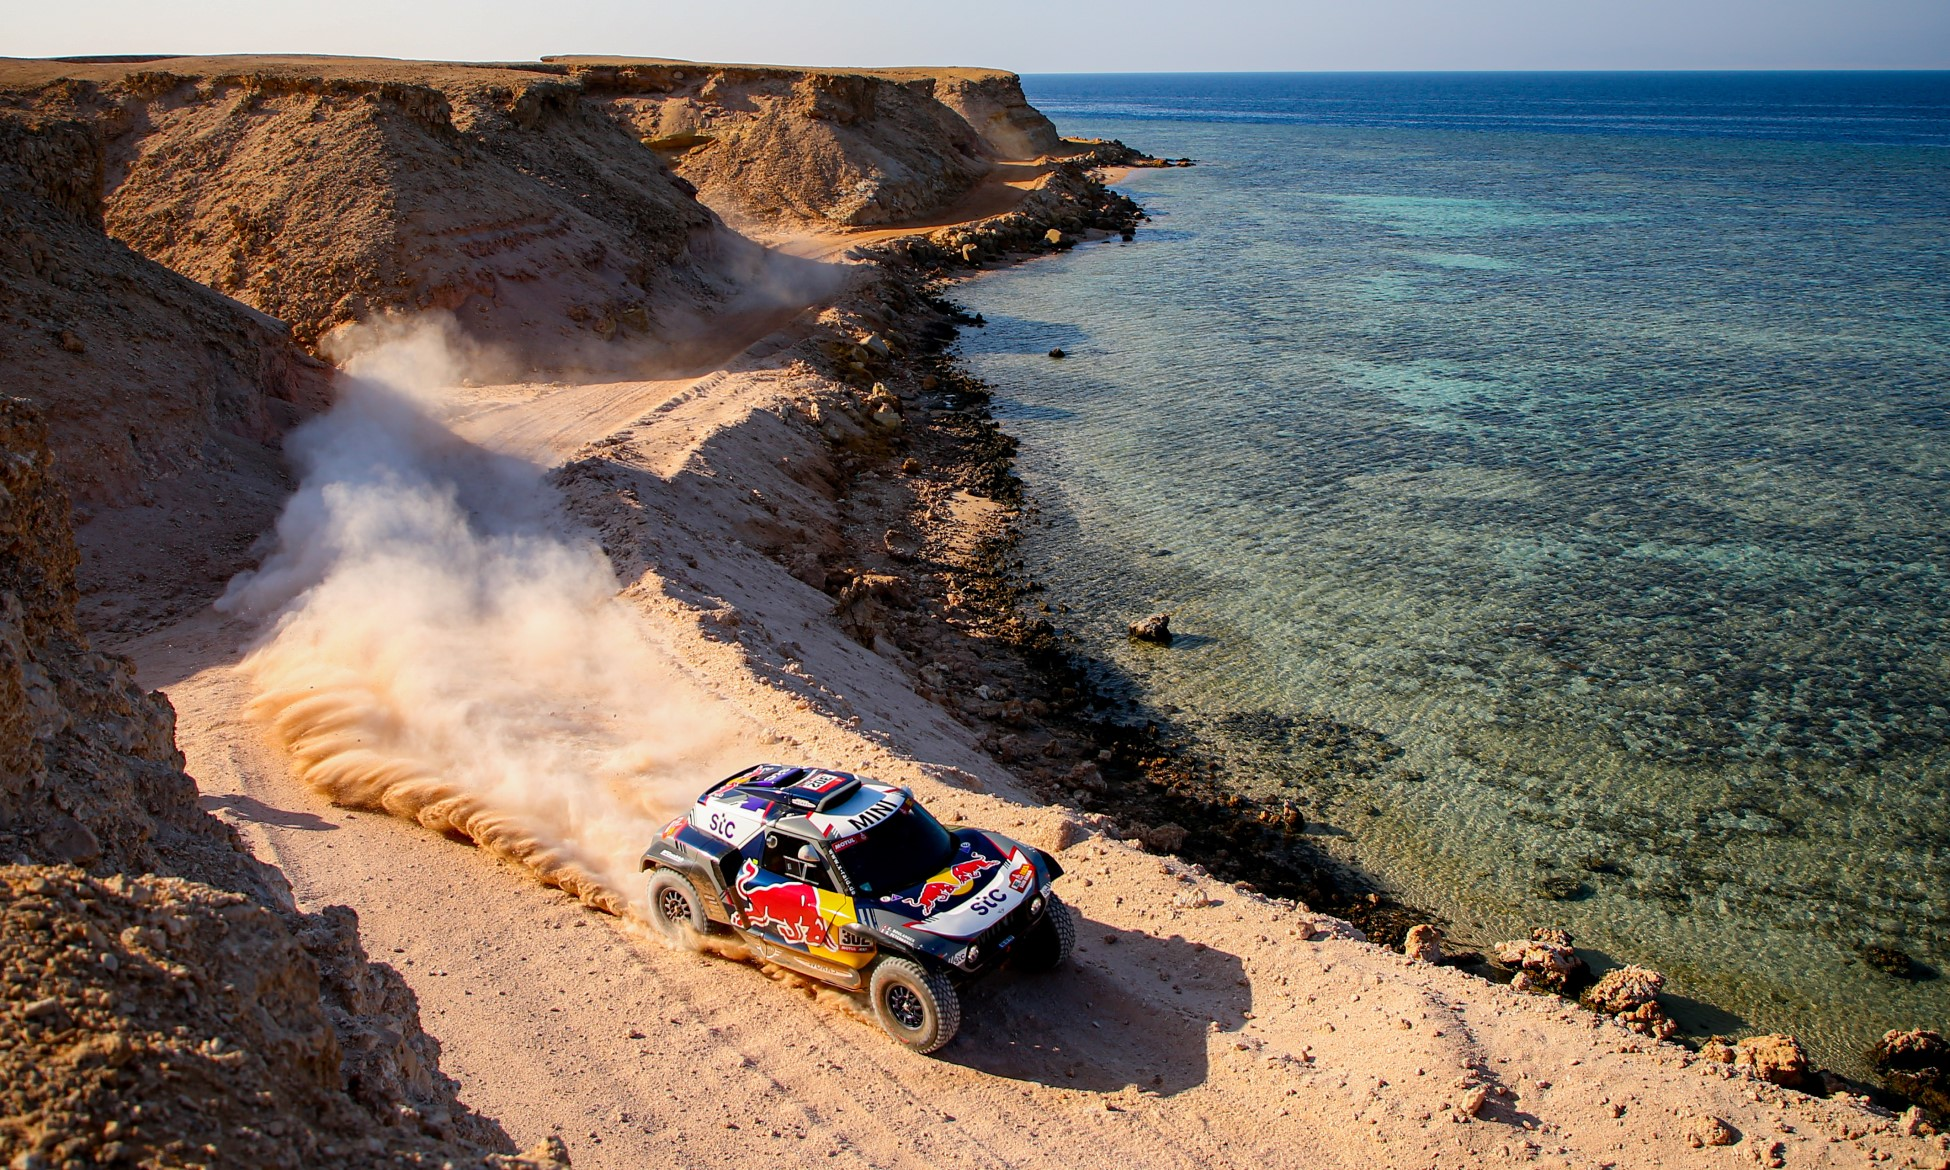 Stephane Peterhansel extended his overall lead on 2021 Dakar Stage 9 (Image J.Delfosse DPPI)